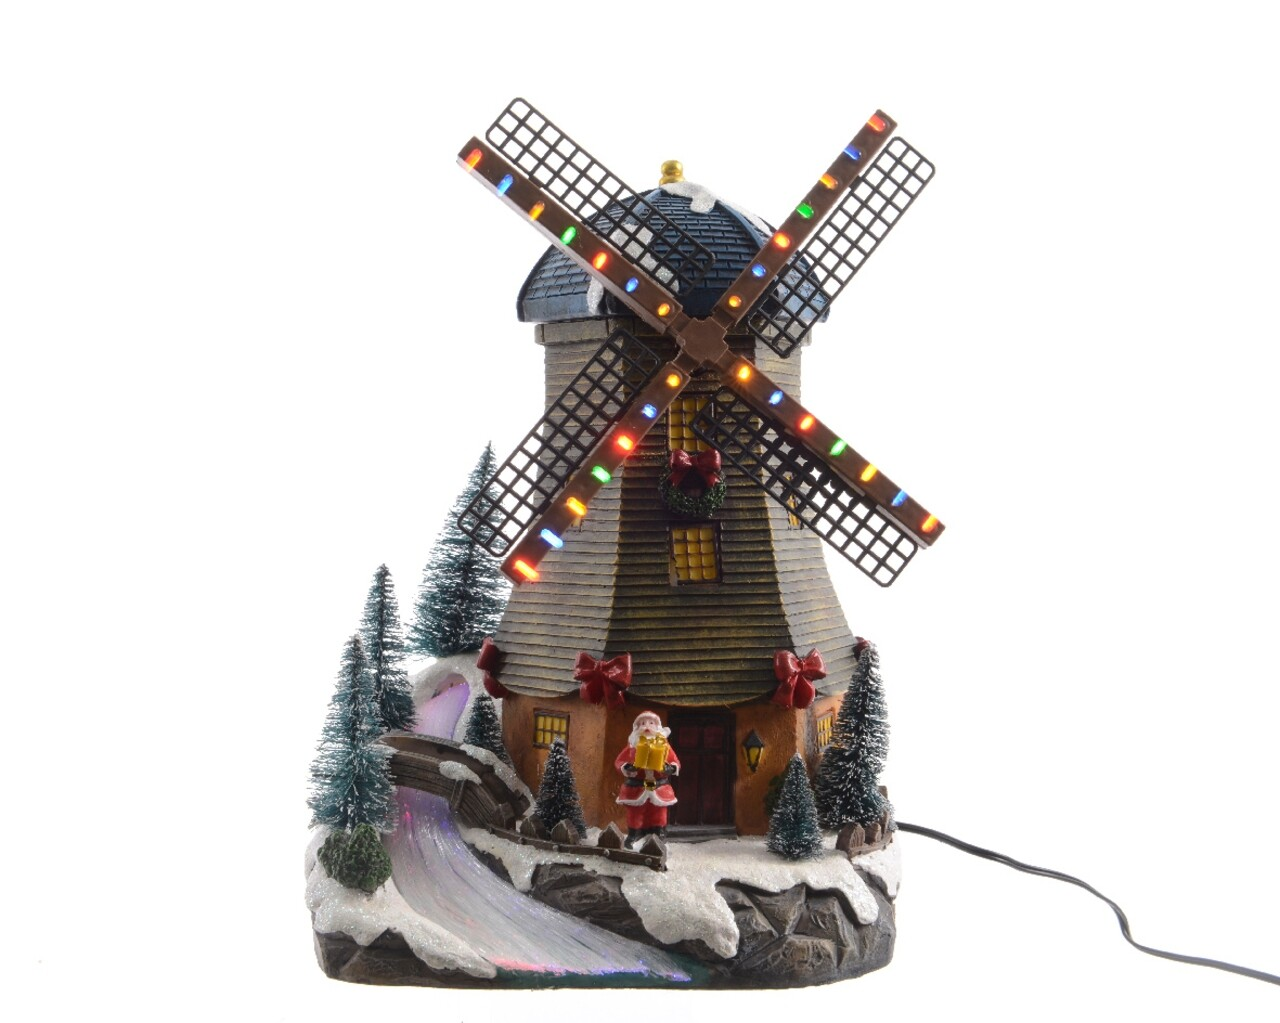 Decoratiune luminoasa Windmill, Lumineo, 31 LED-uri, 20x20x29 cm